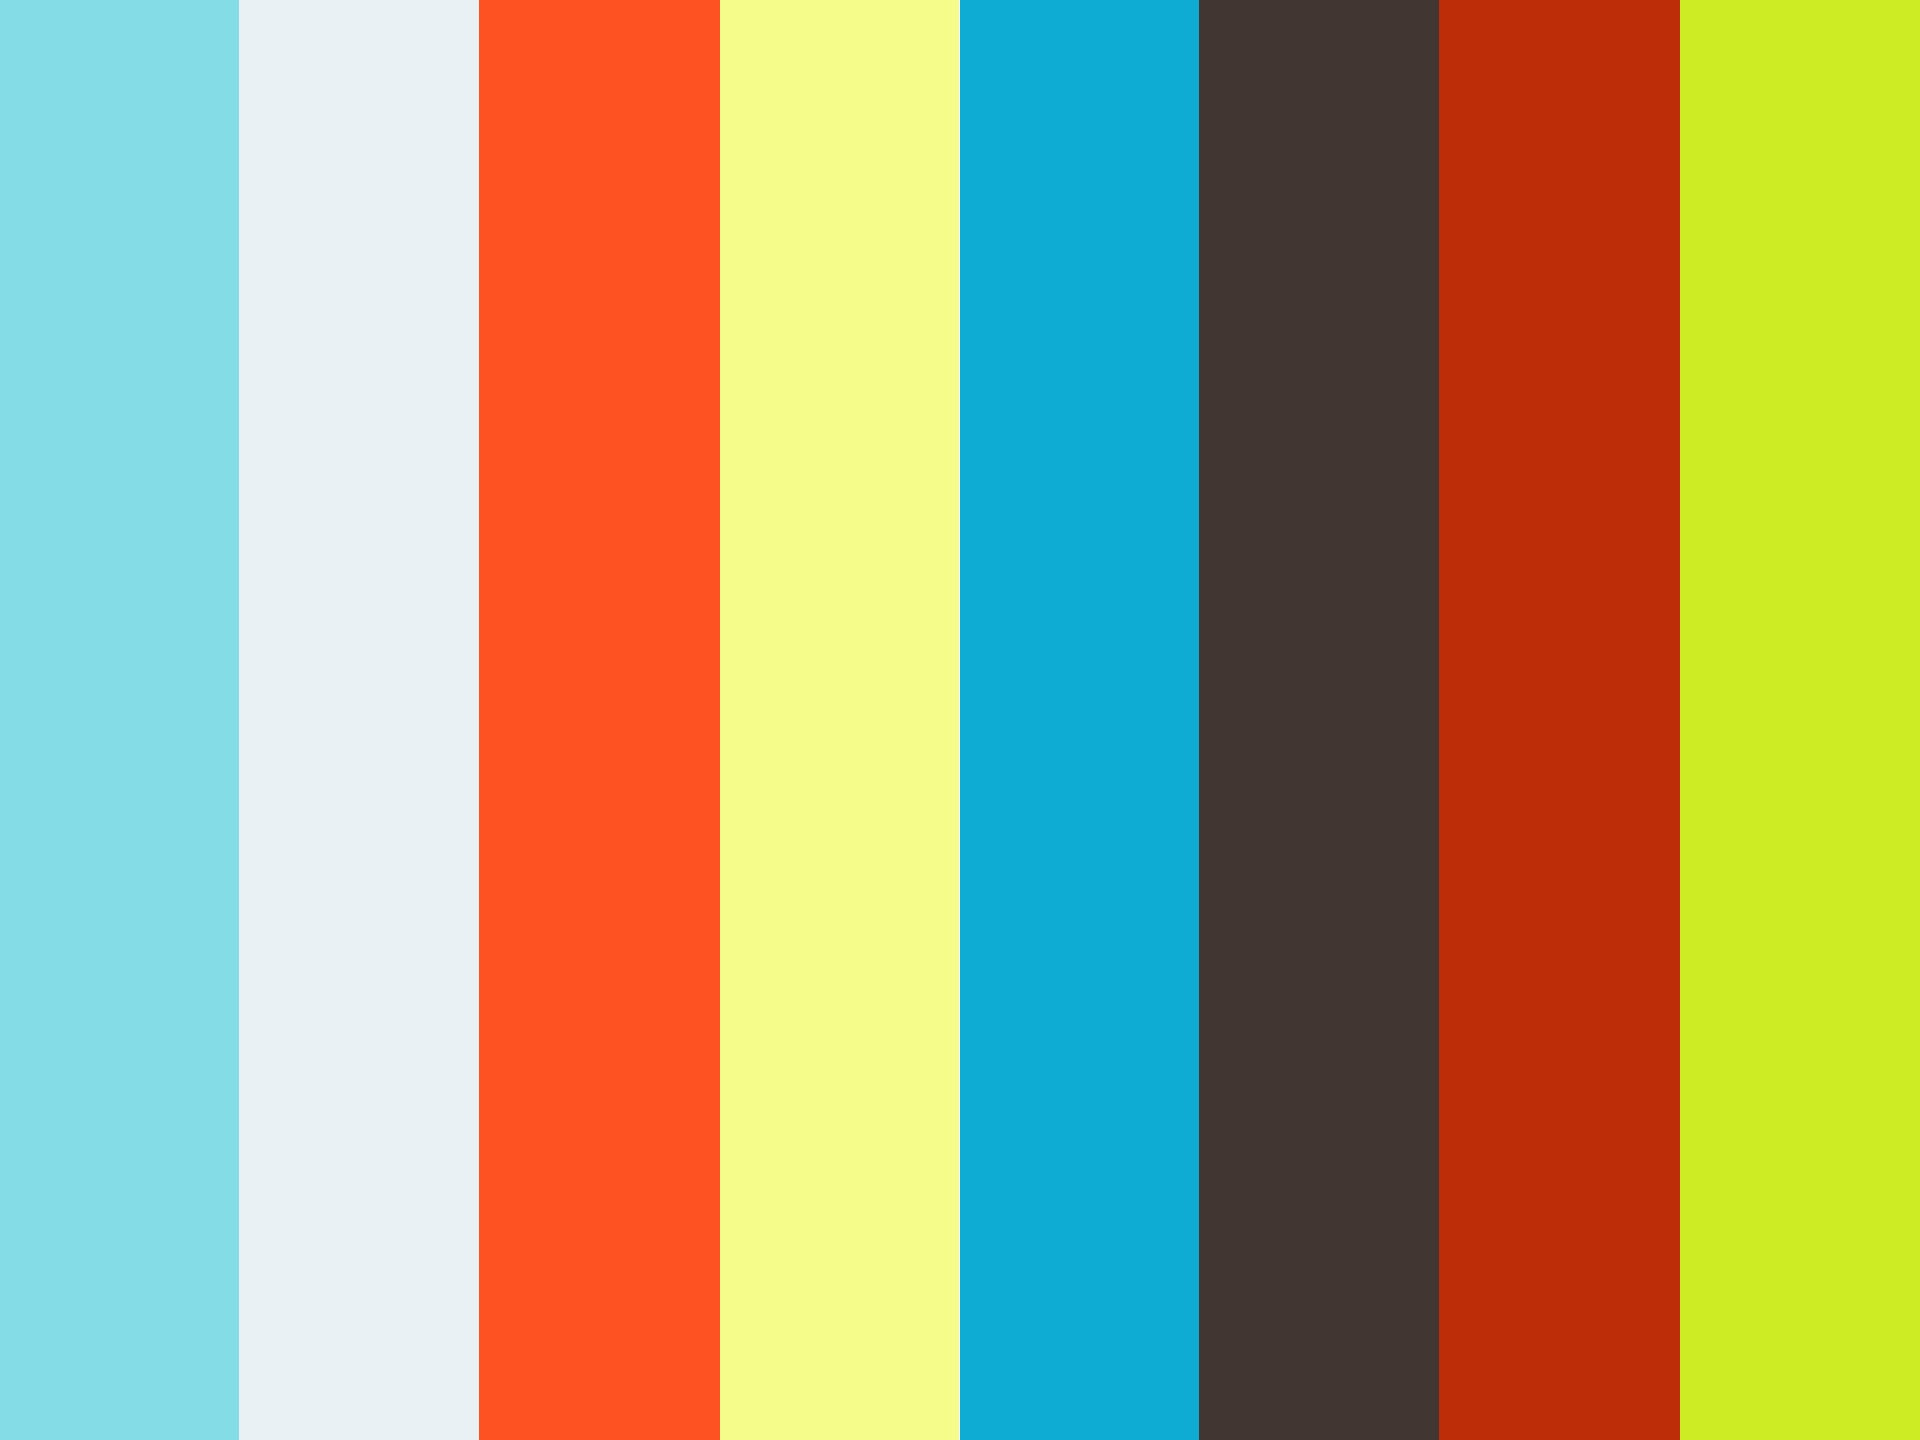 Does Hospital Transfer Impact Outcomes after Colorectal Surgery? 2016